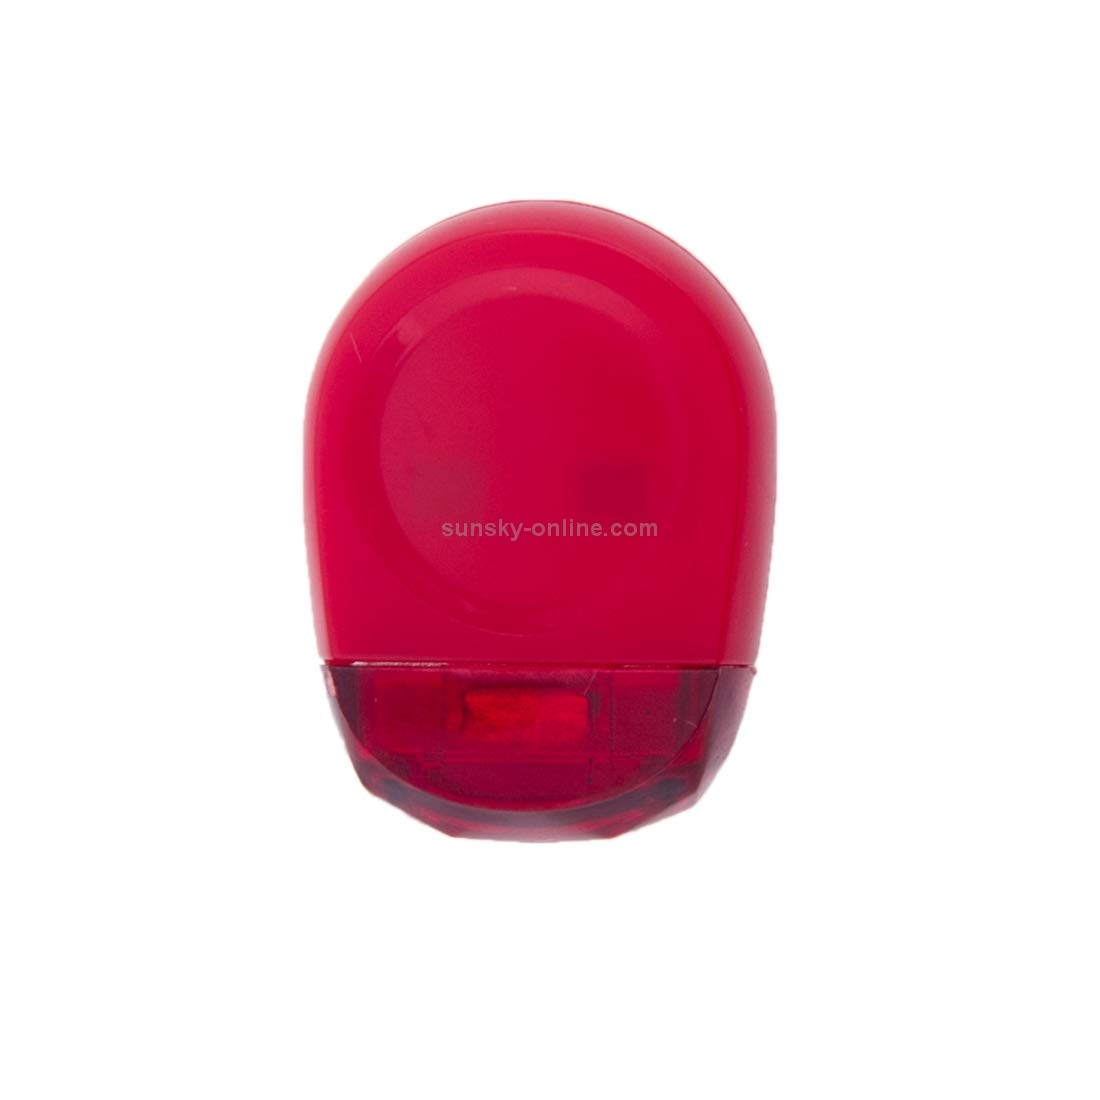 Red Diamond Cut Style 16GB Mini USB Flash Drive for PC and Laptop Lekai Multifunctional Meet Different Needs ,Easy to Carry Around.